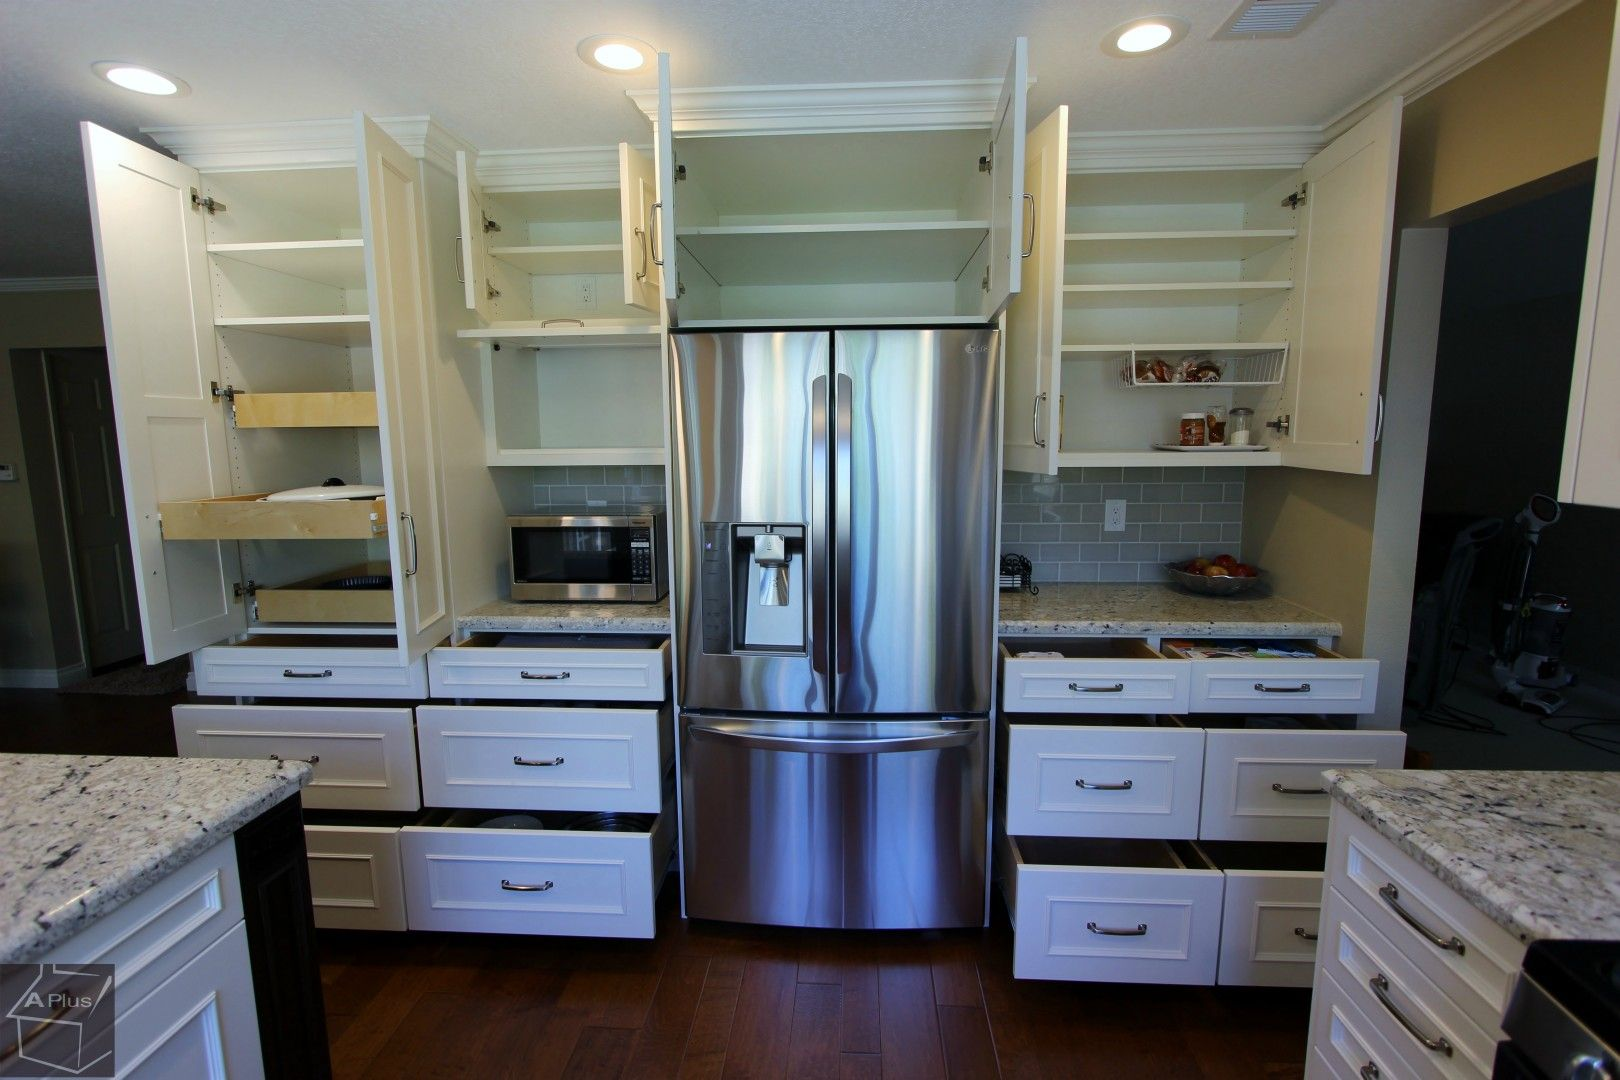 Irvine Complete Kitchen Remodel With Brand New Custom Cabinets In 2020 Complete Kitchen Remodel Kitchen Inspiration Design Beautiful Kitchen Cabinets